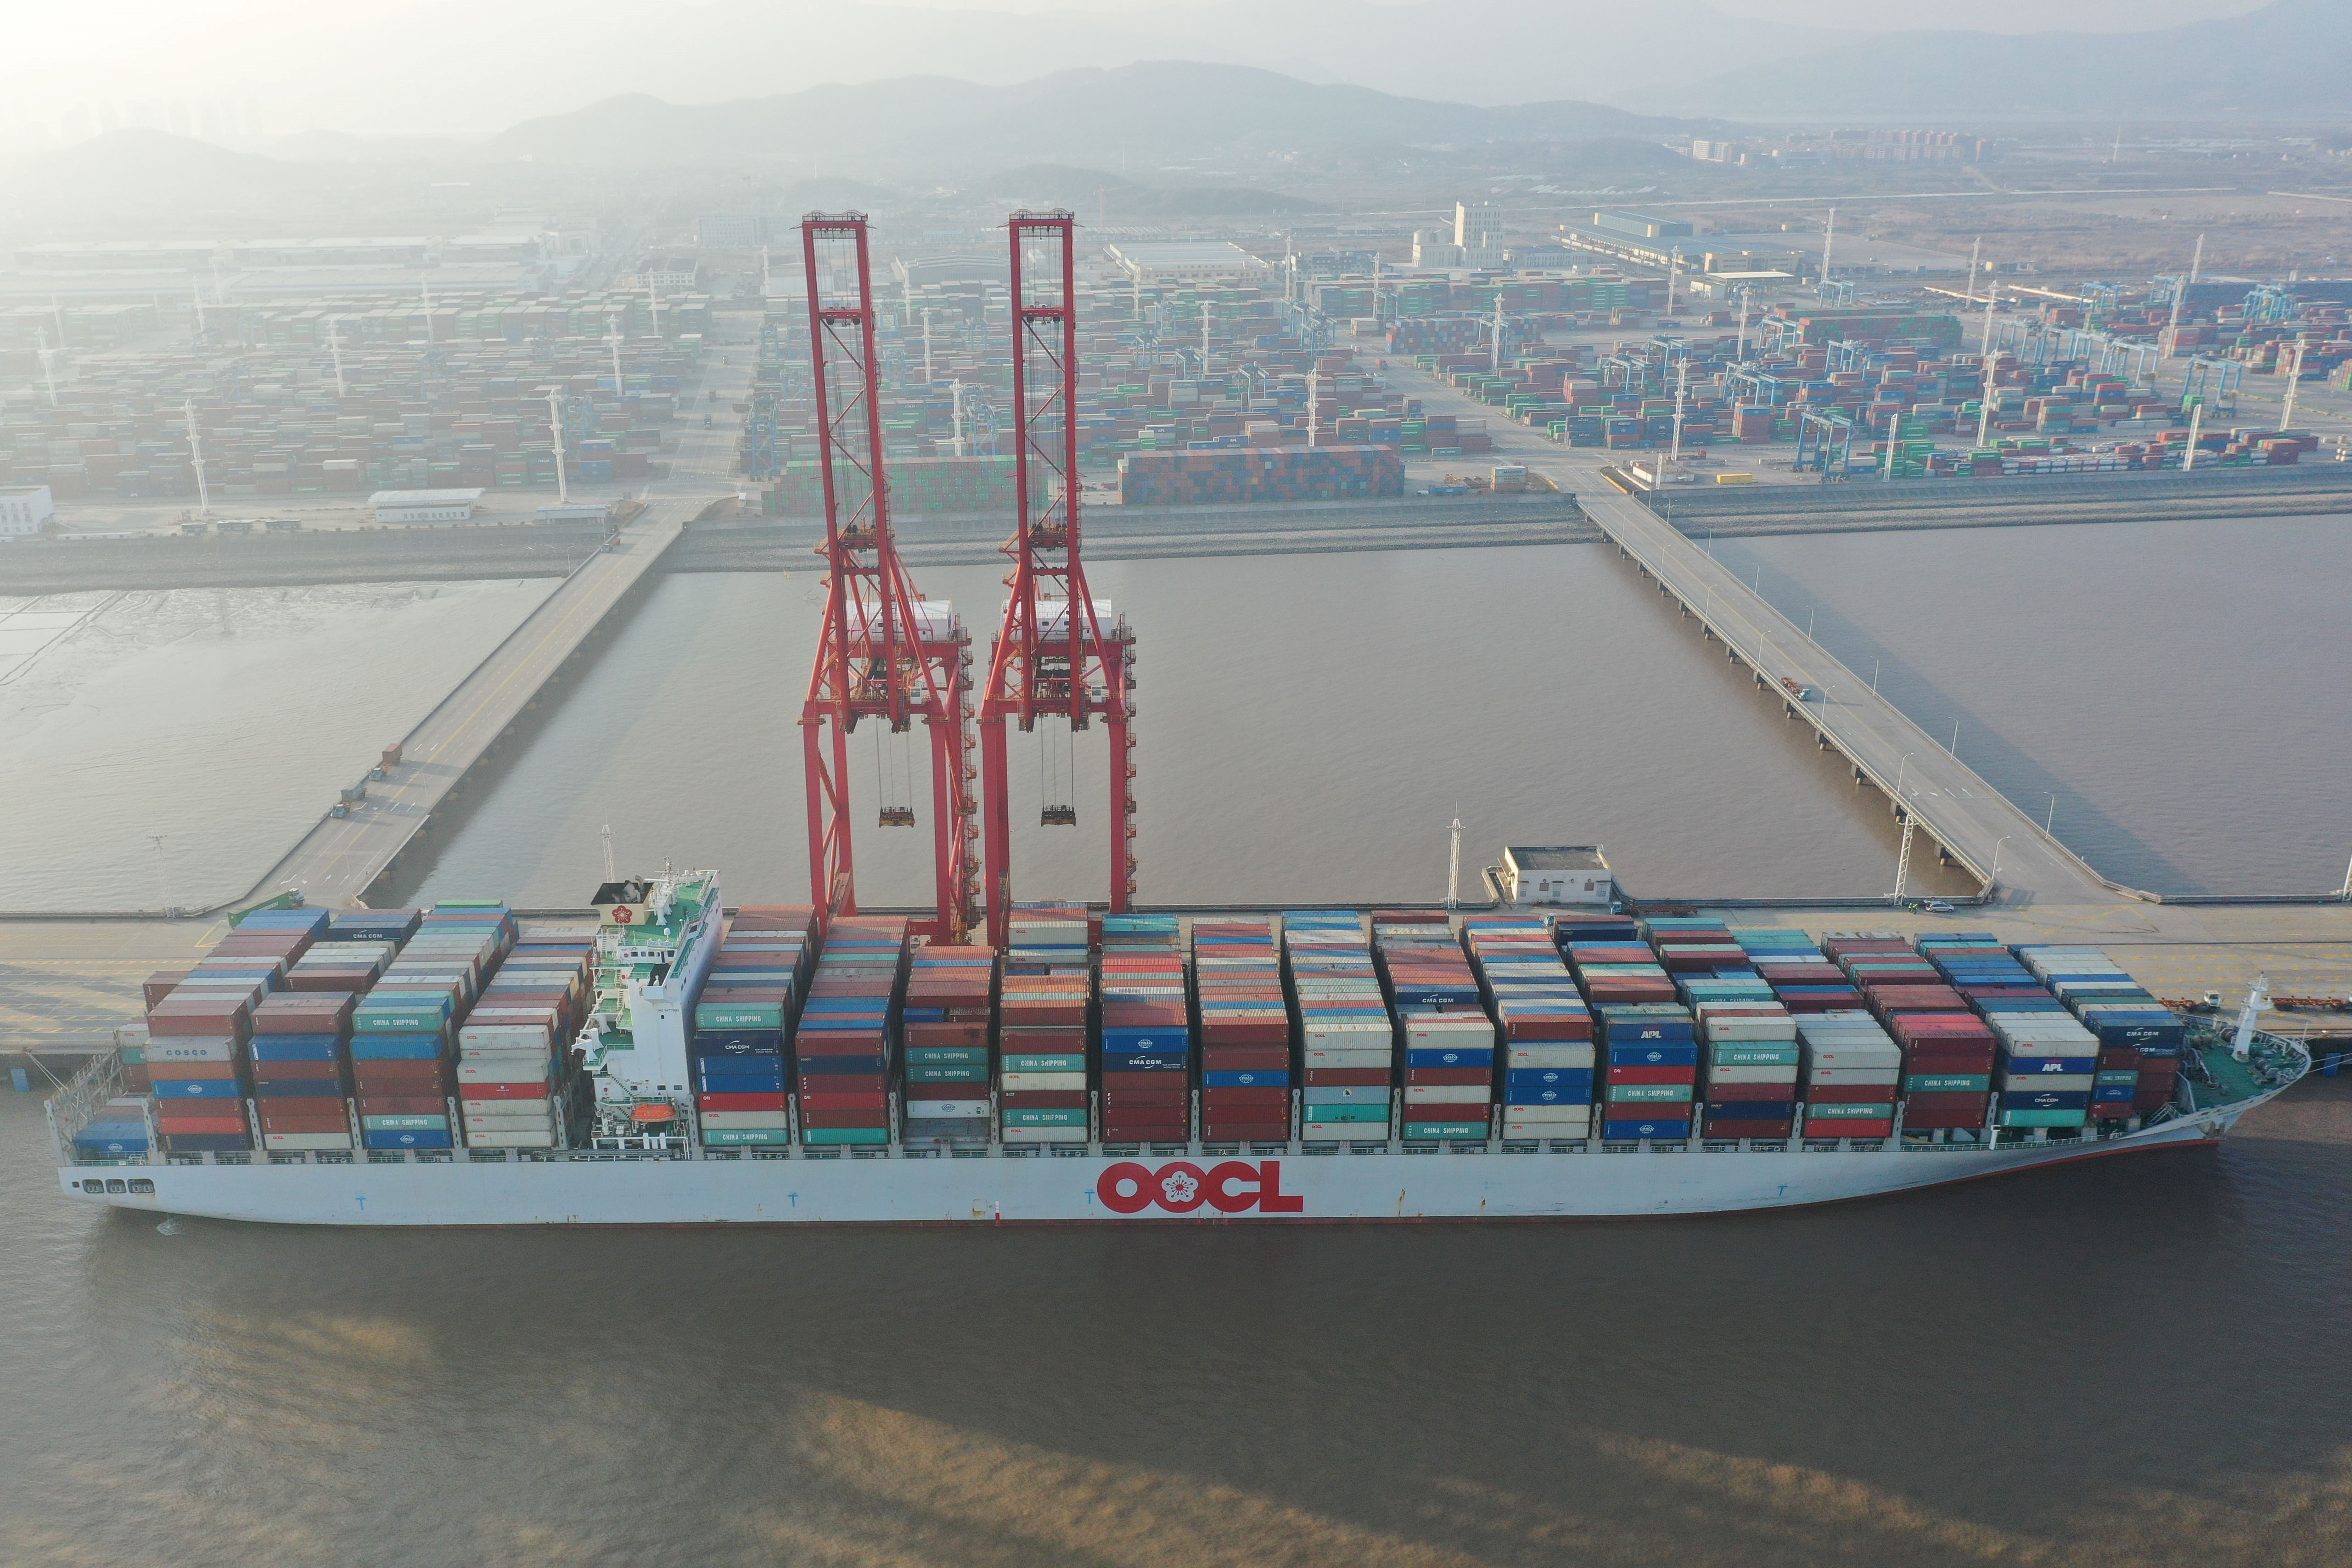 A cargo ship at the Meidong Container Terminal at the Ningbo Zhoushan port in China